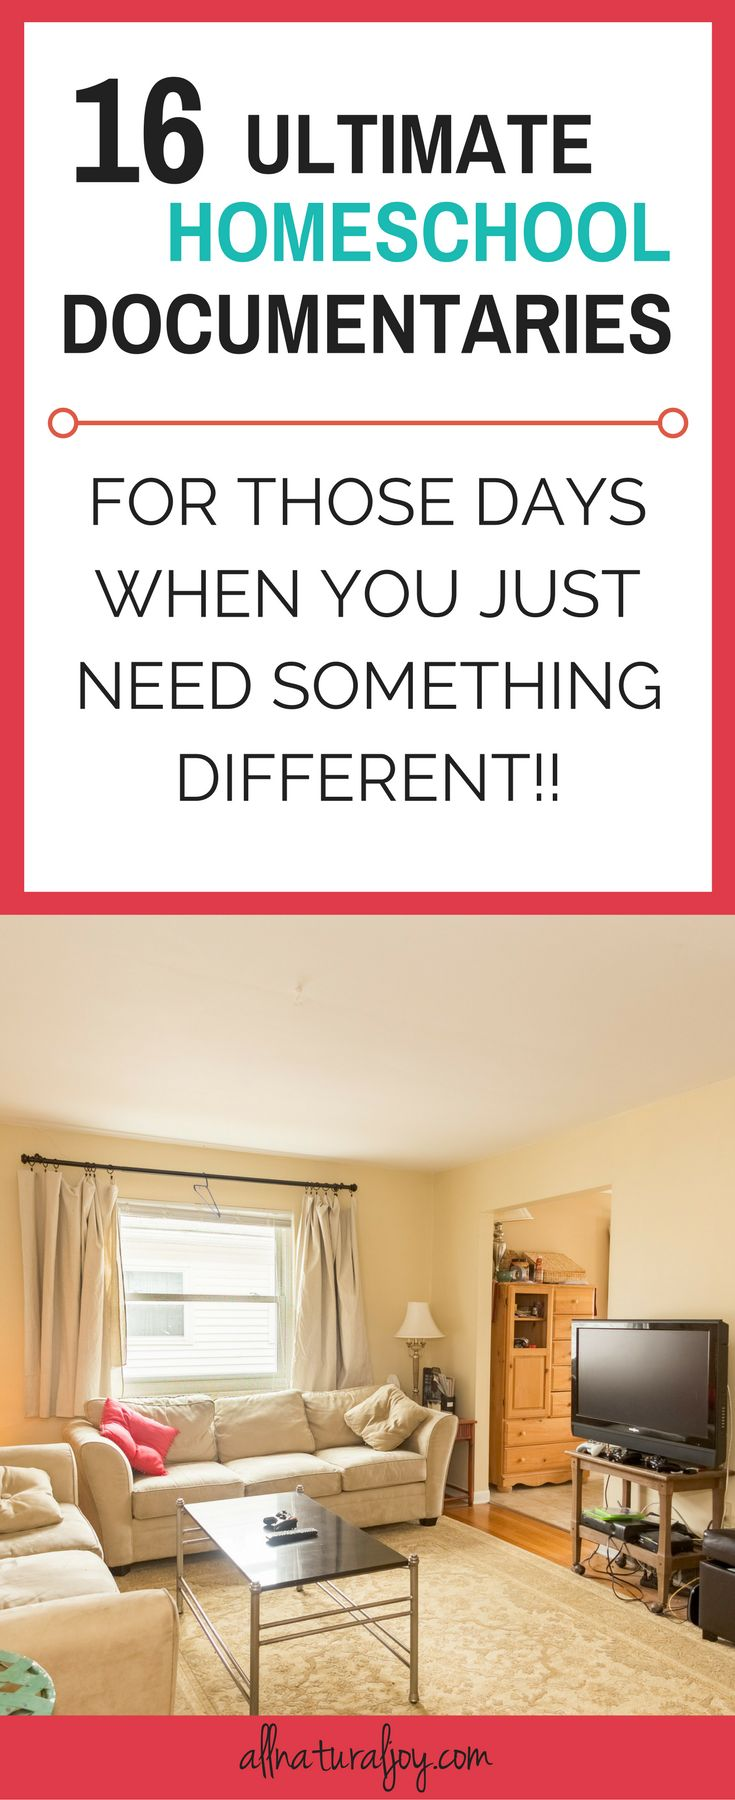 For those homeschool days when you are not sure what to do, it's always a good idea to have a list of good and educational things that you can watch via @Pinterest.com/allnaturaljoy_